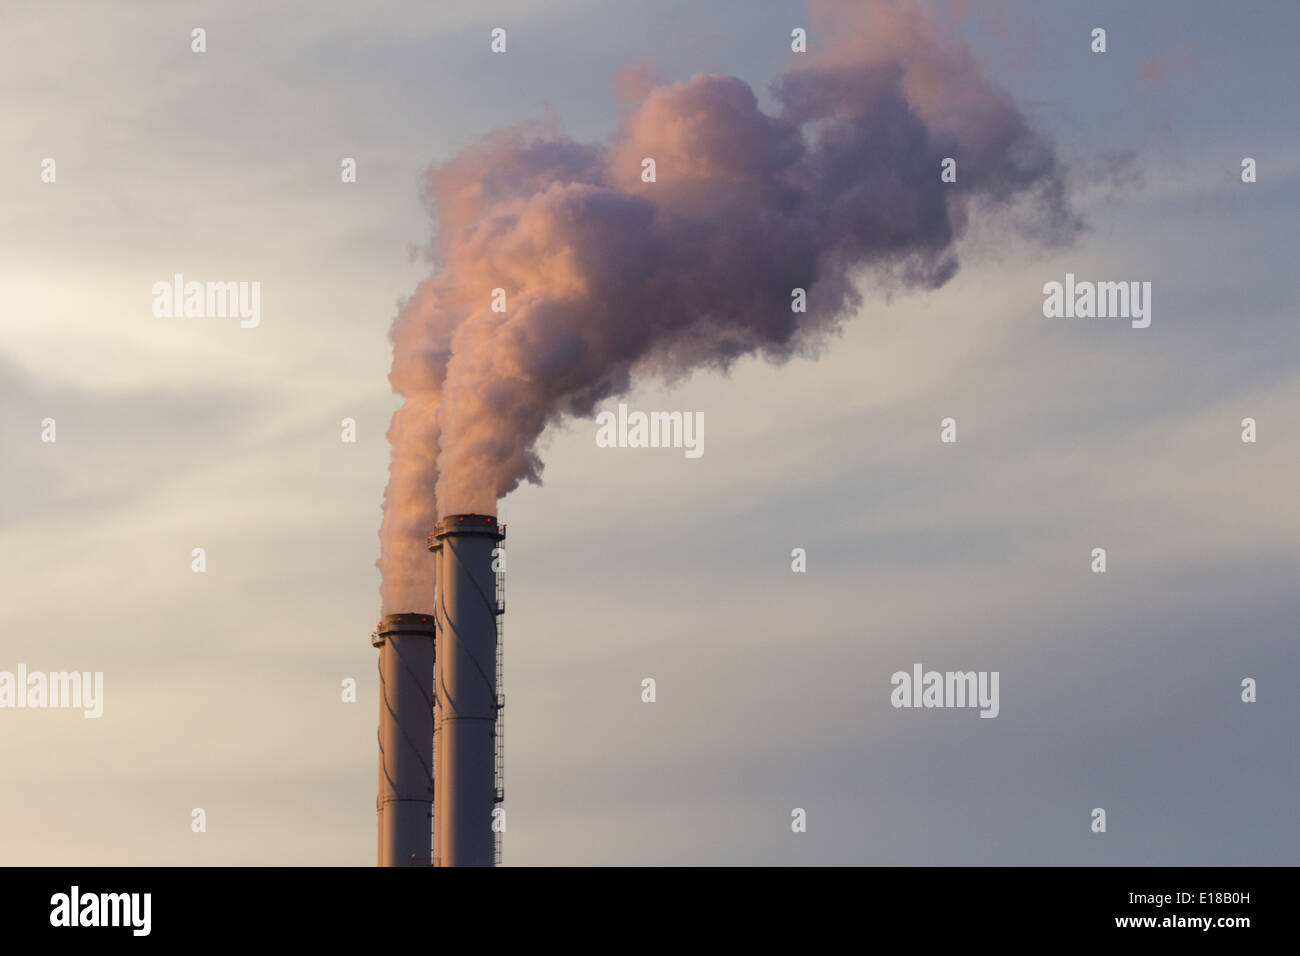 Smoke emission from factory pipes - Stock Image